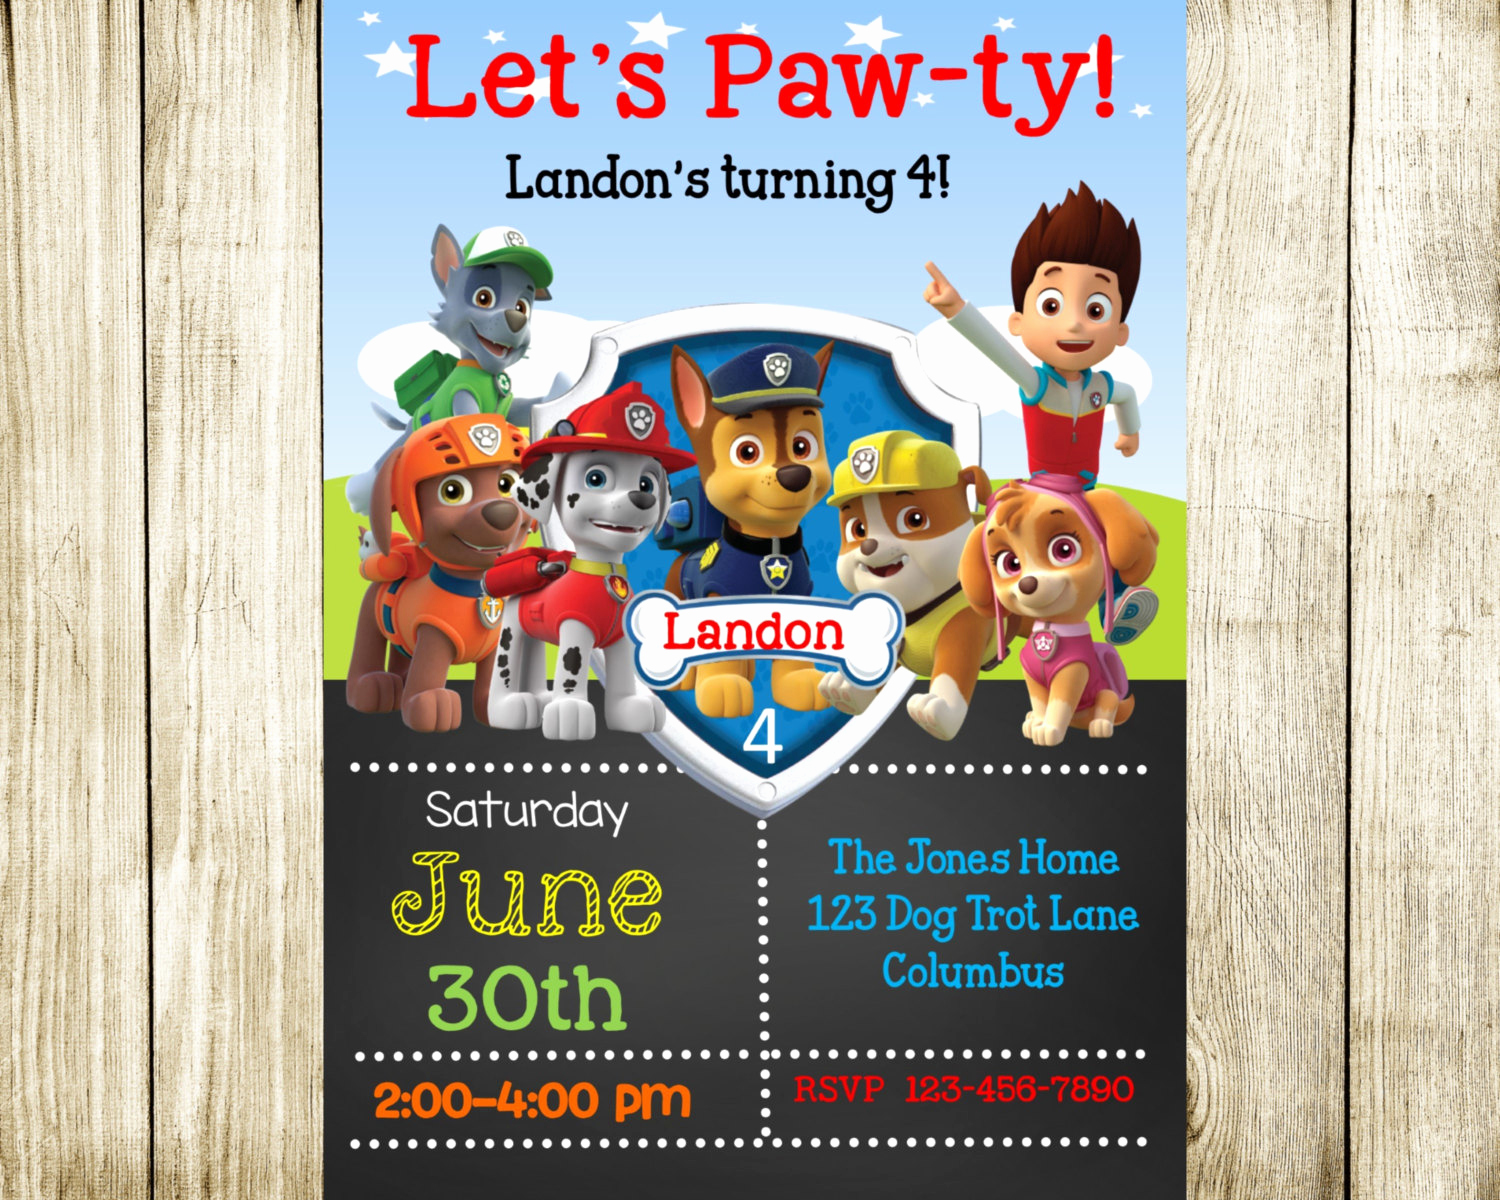 Paw Patrol Party Invitation Template Unique Paw Patrol Birthday Paw Patrol Invitation by Needmoredesigns